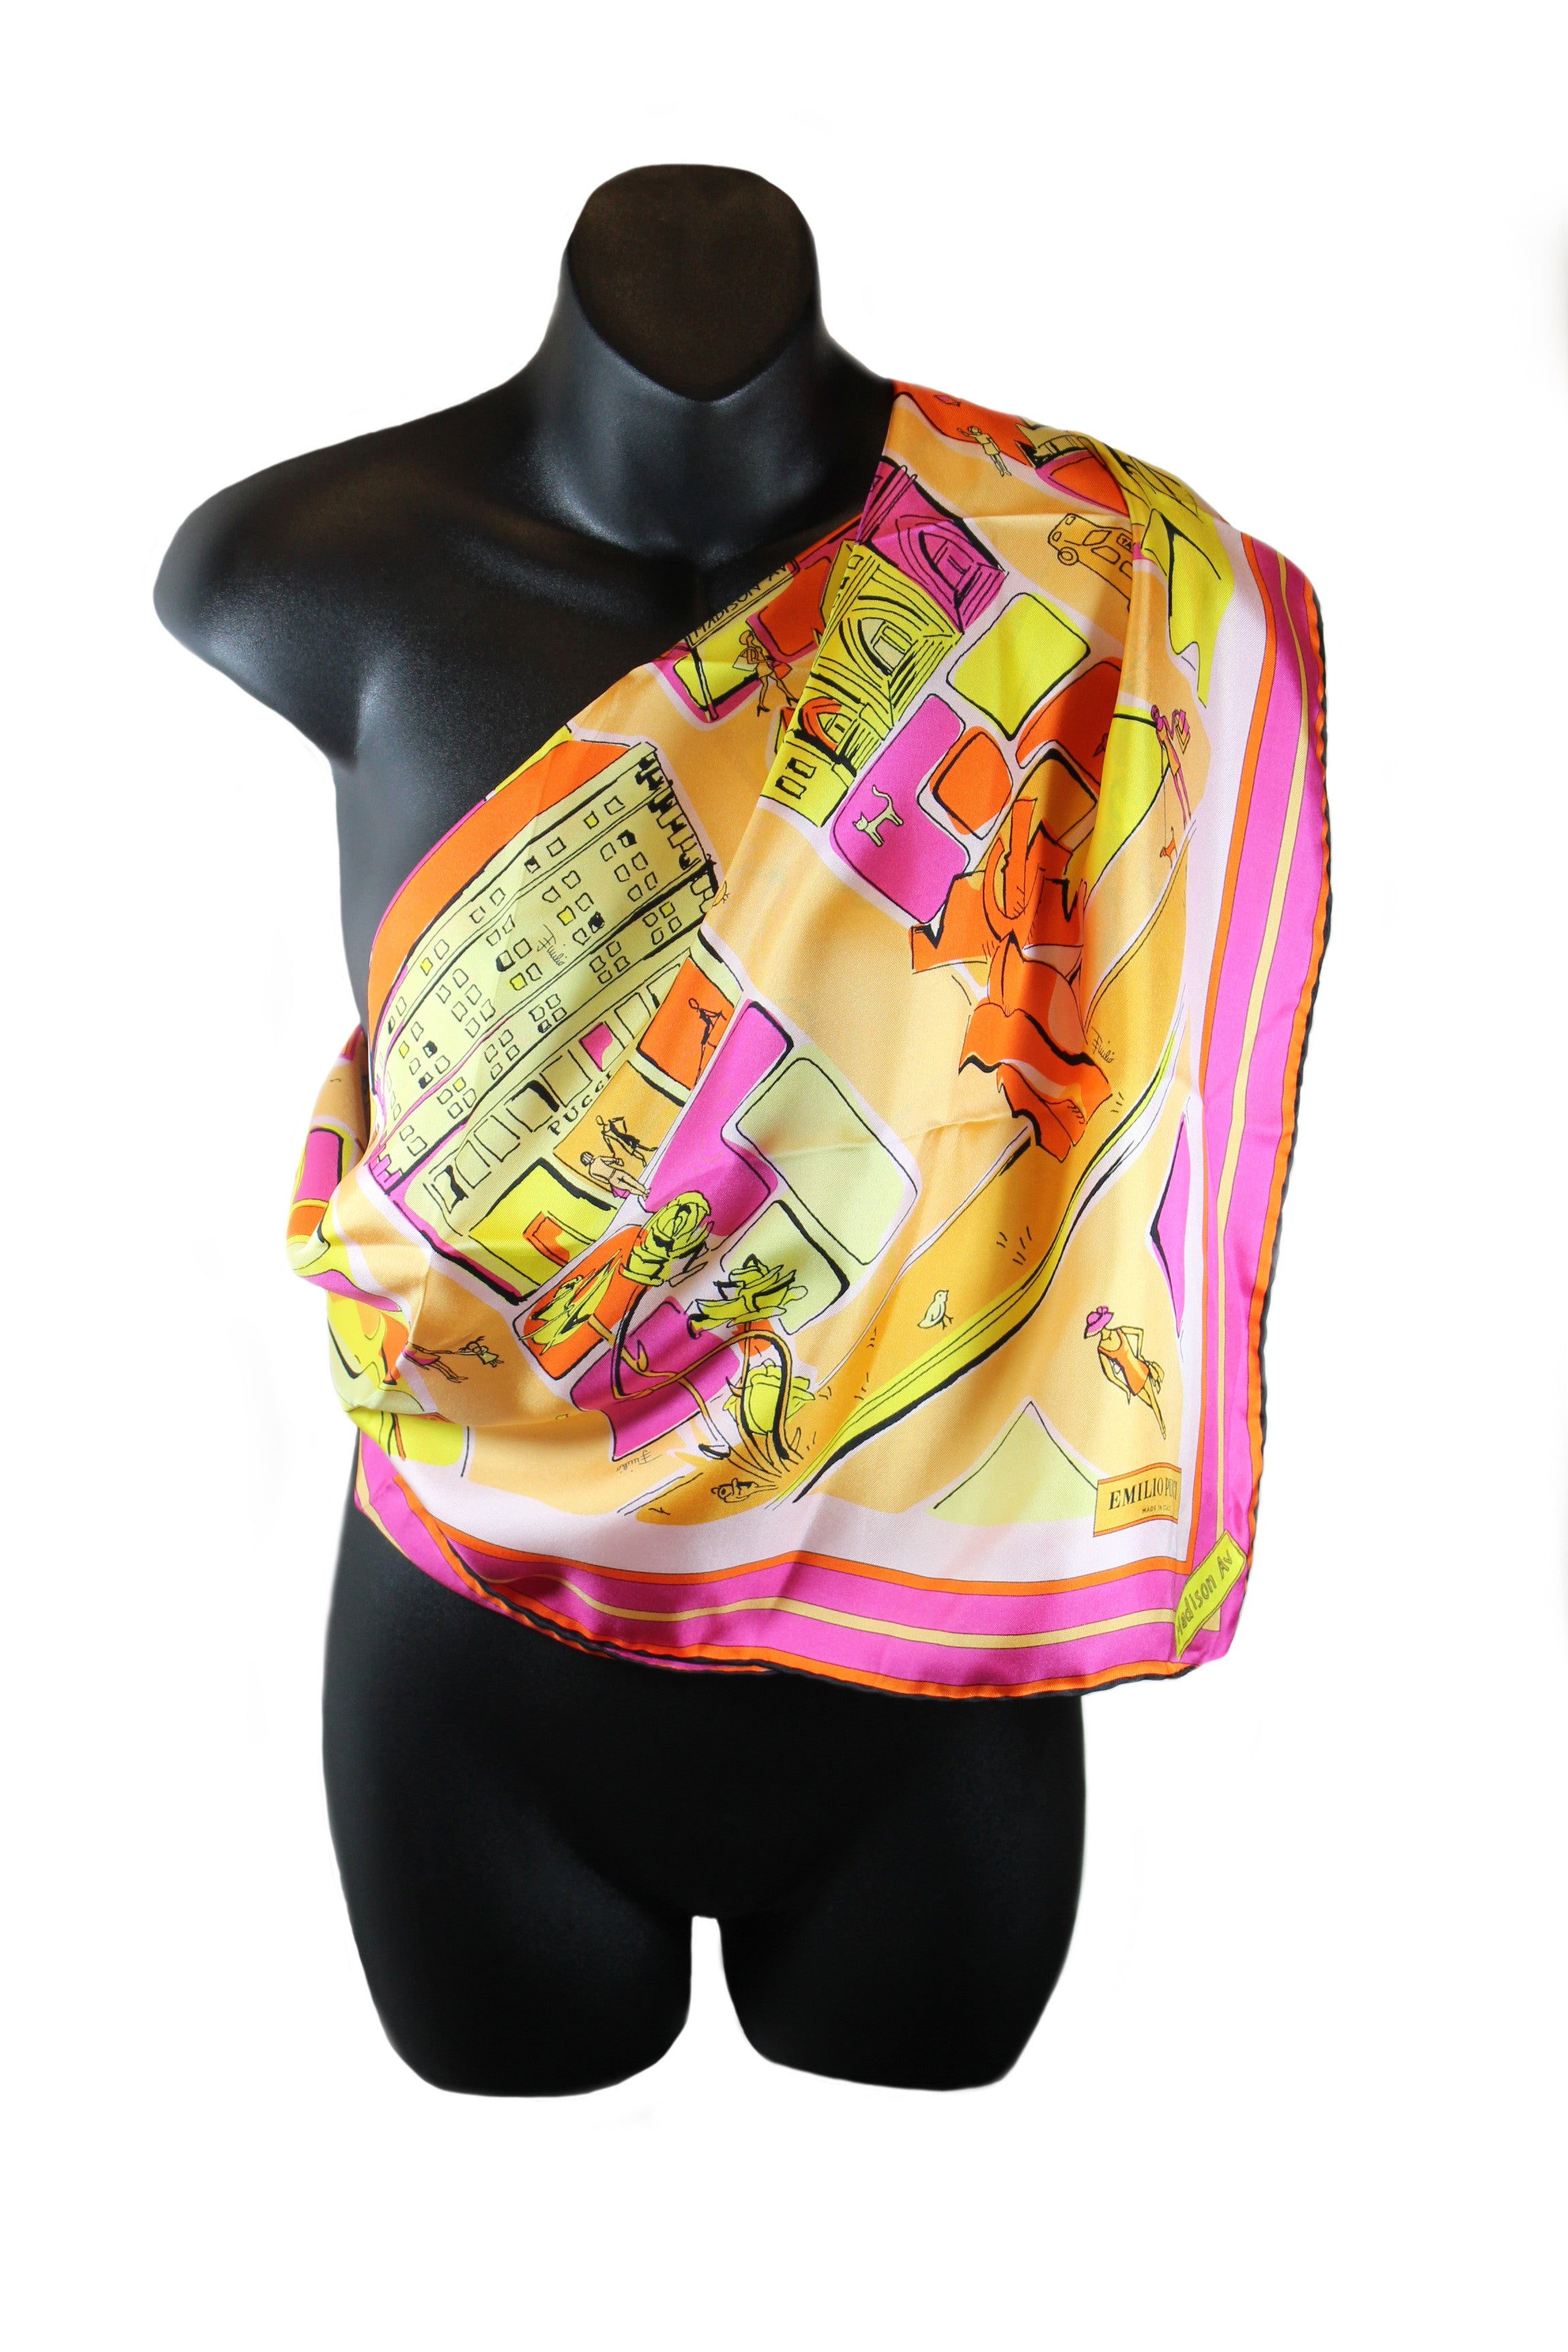 Emilio Pucci Madison Avenue Printed Silk Scarf